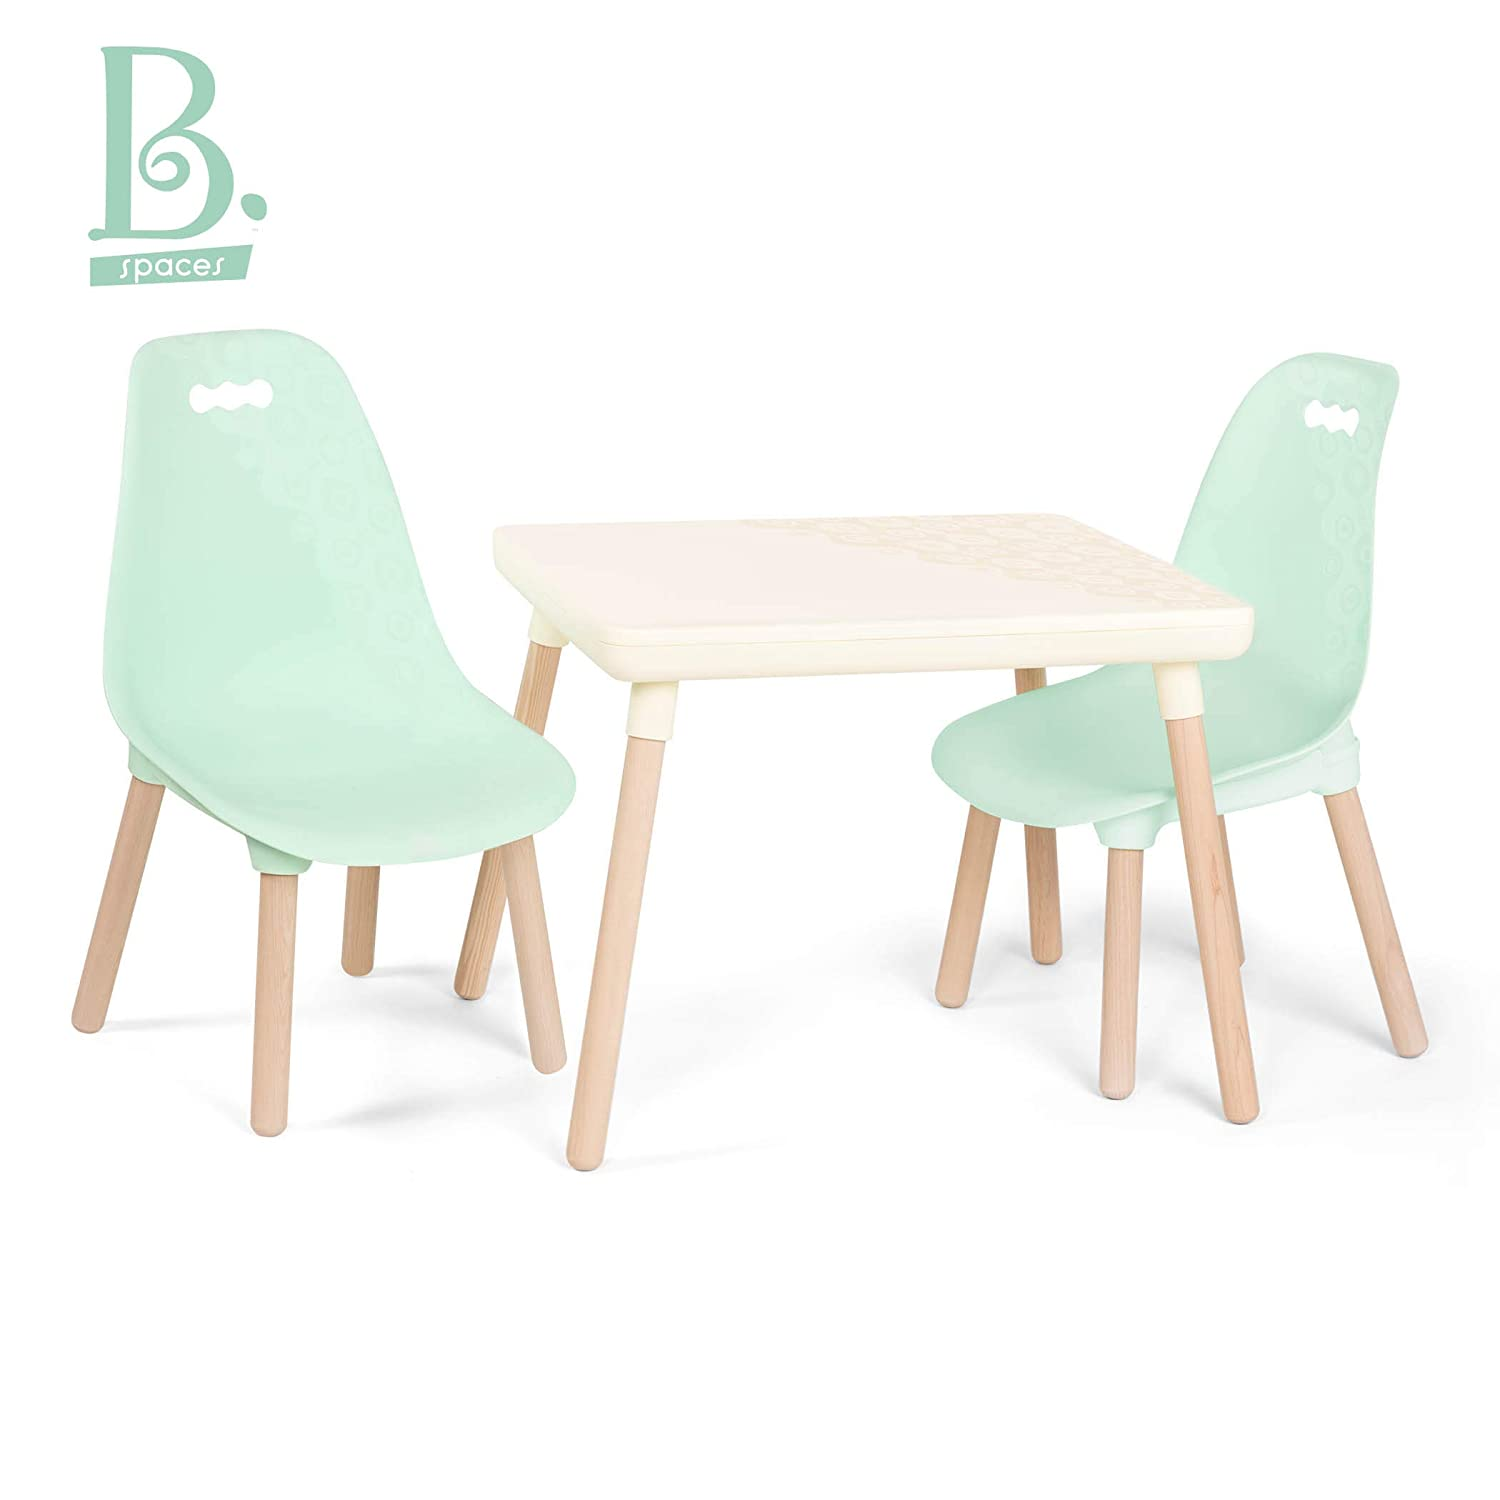 Super B Toys Kids Furniture Set 1 Craft Table 2 Kids Chairs With Natural Wooden Legs Ivory And Mint Interior Design Ideas Gentotryabchikinfo